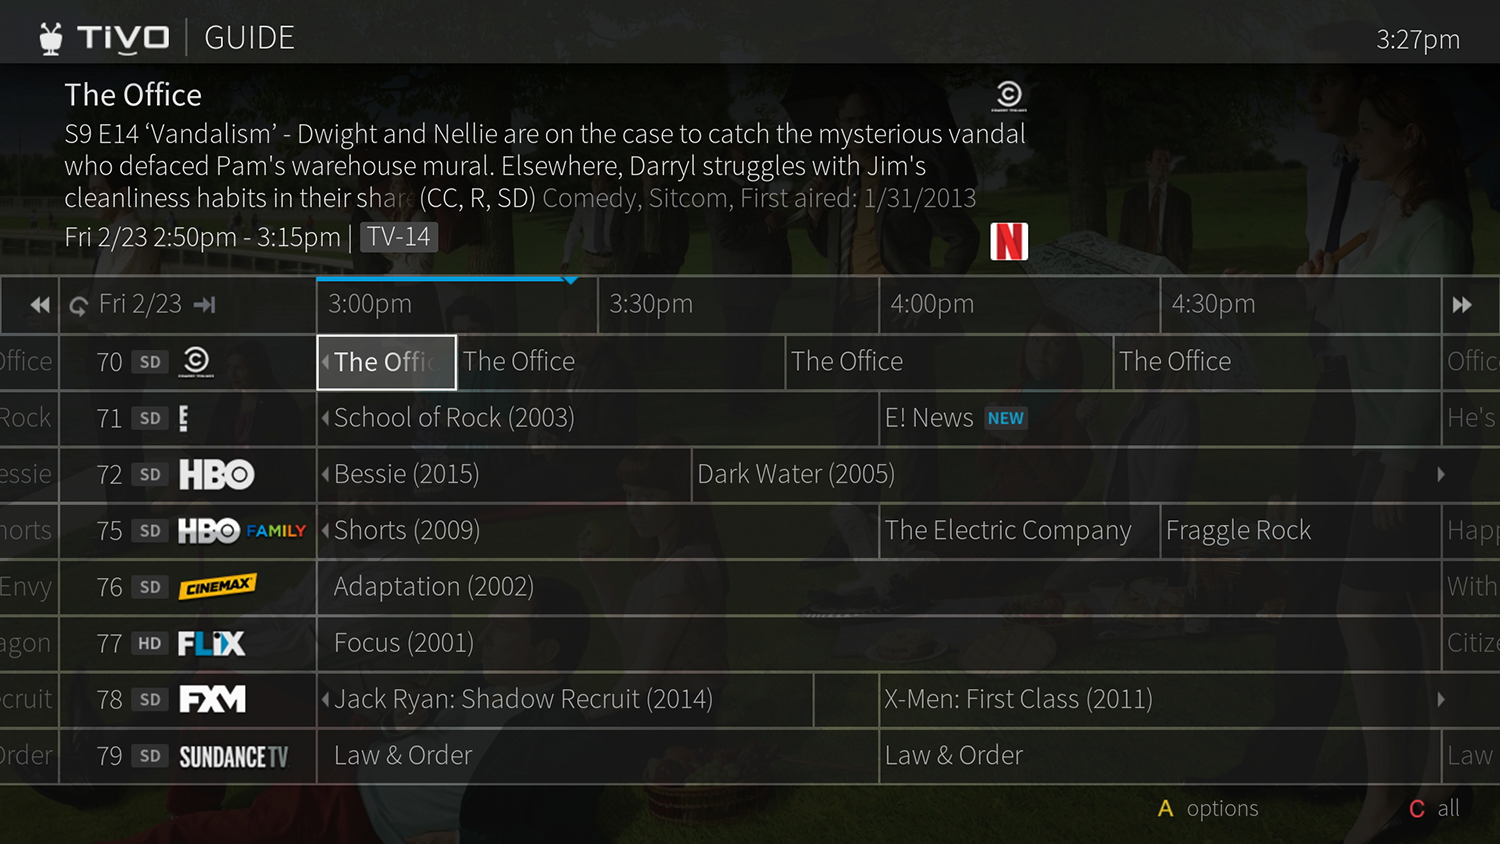 TiVo Guide shows you what's happening on all your channels for the next 2 weeks.